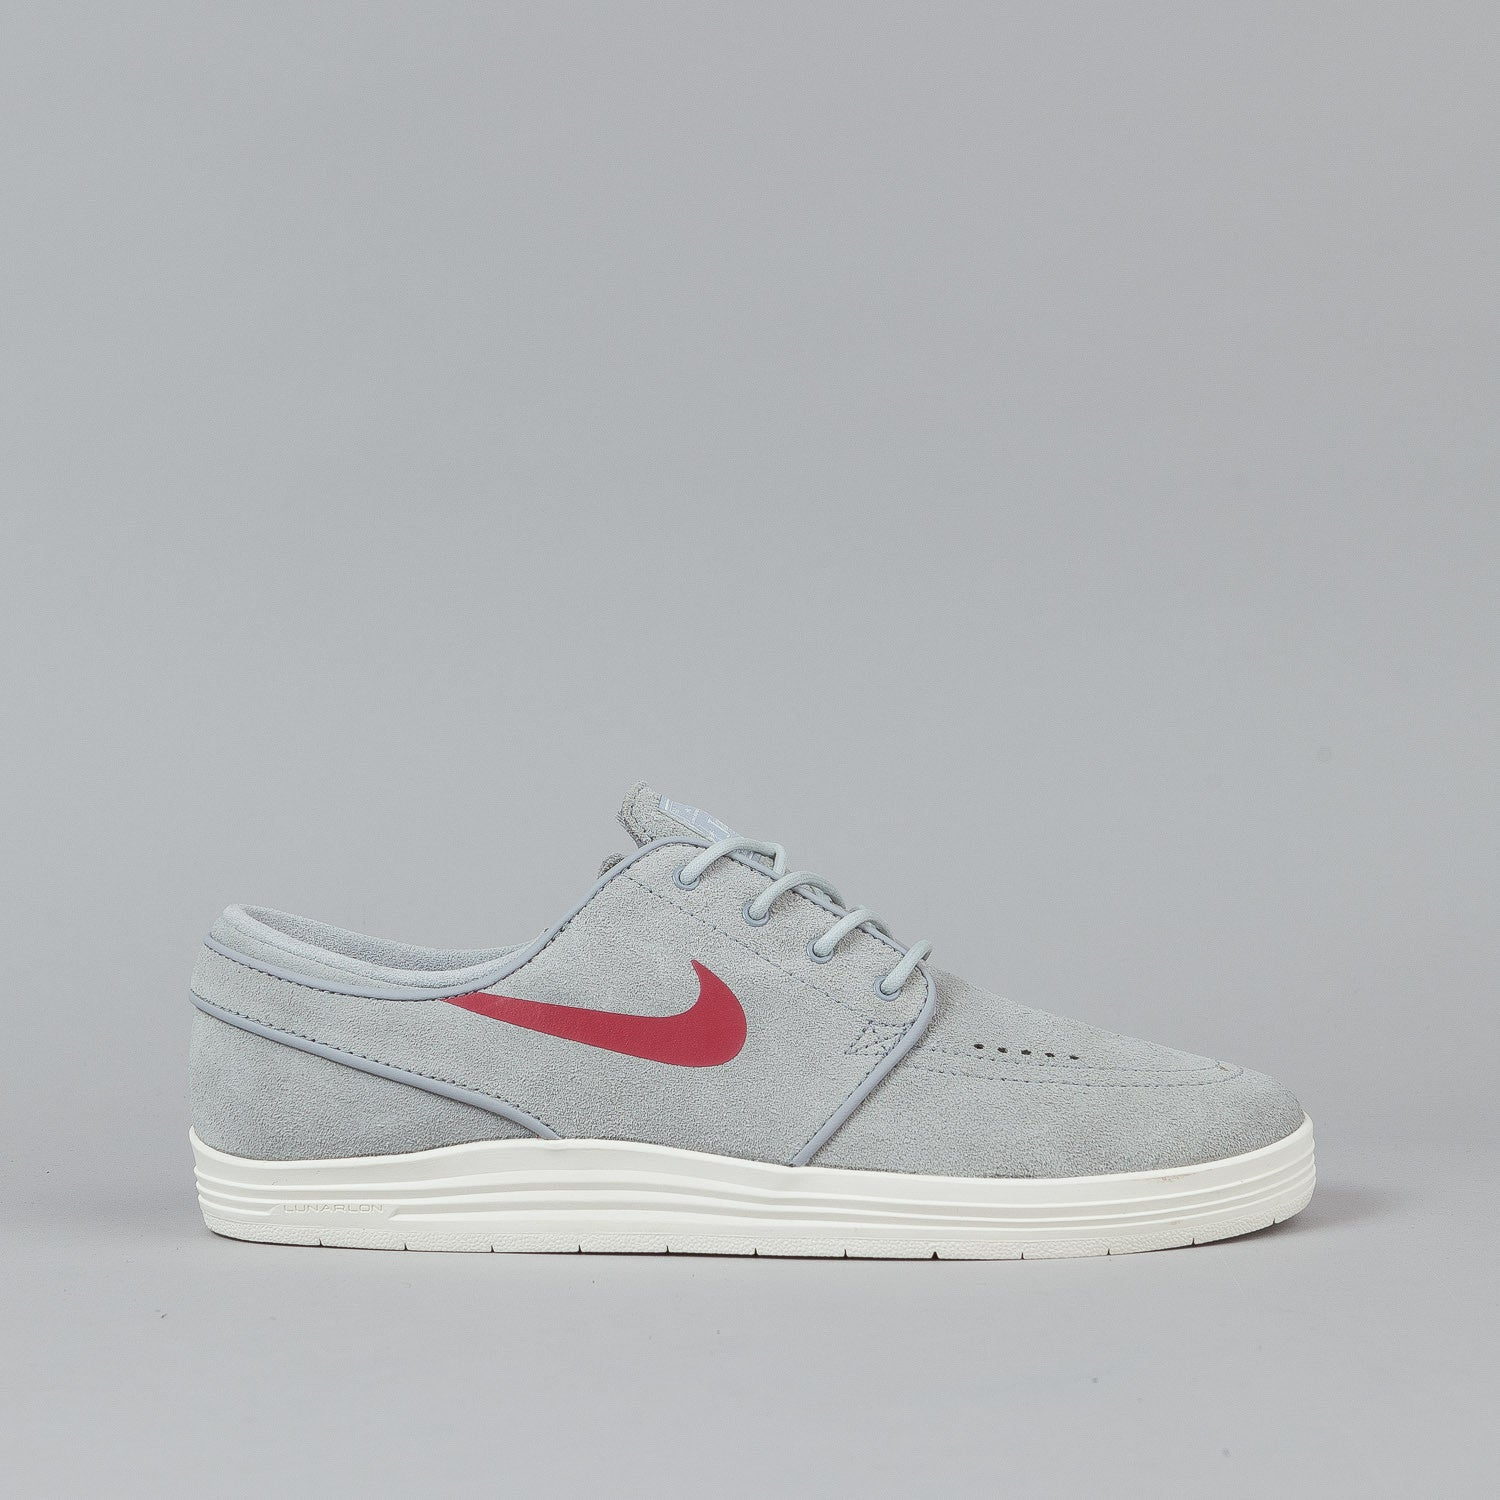 Nike SB Lunar Stefan Janoski Shoes Wolf Grey / Gym Red